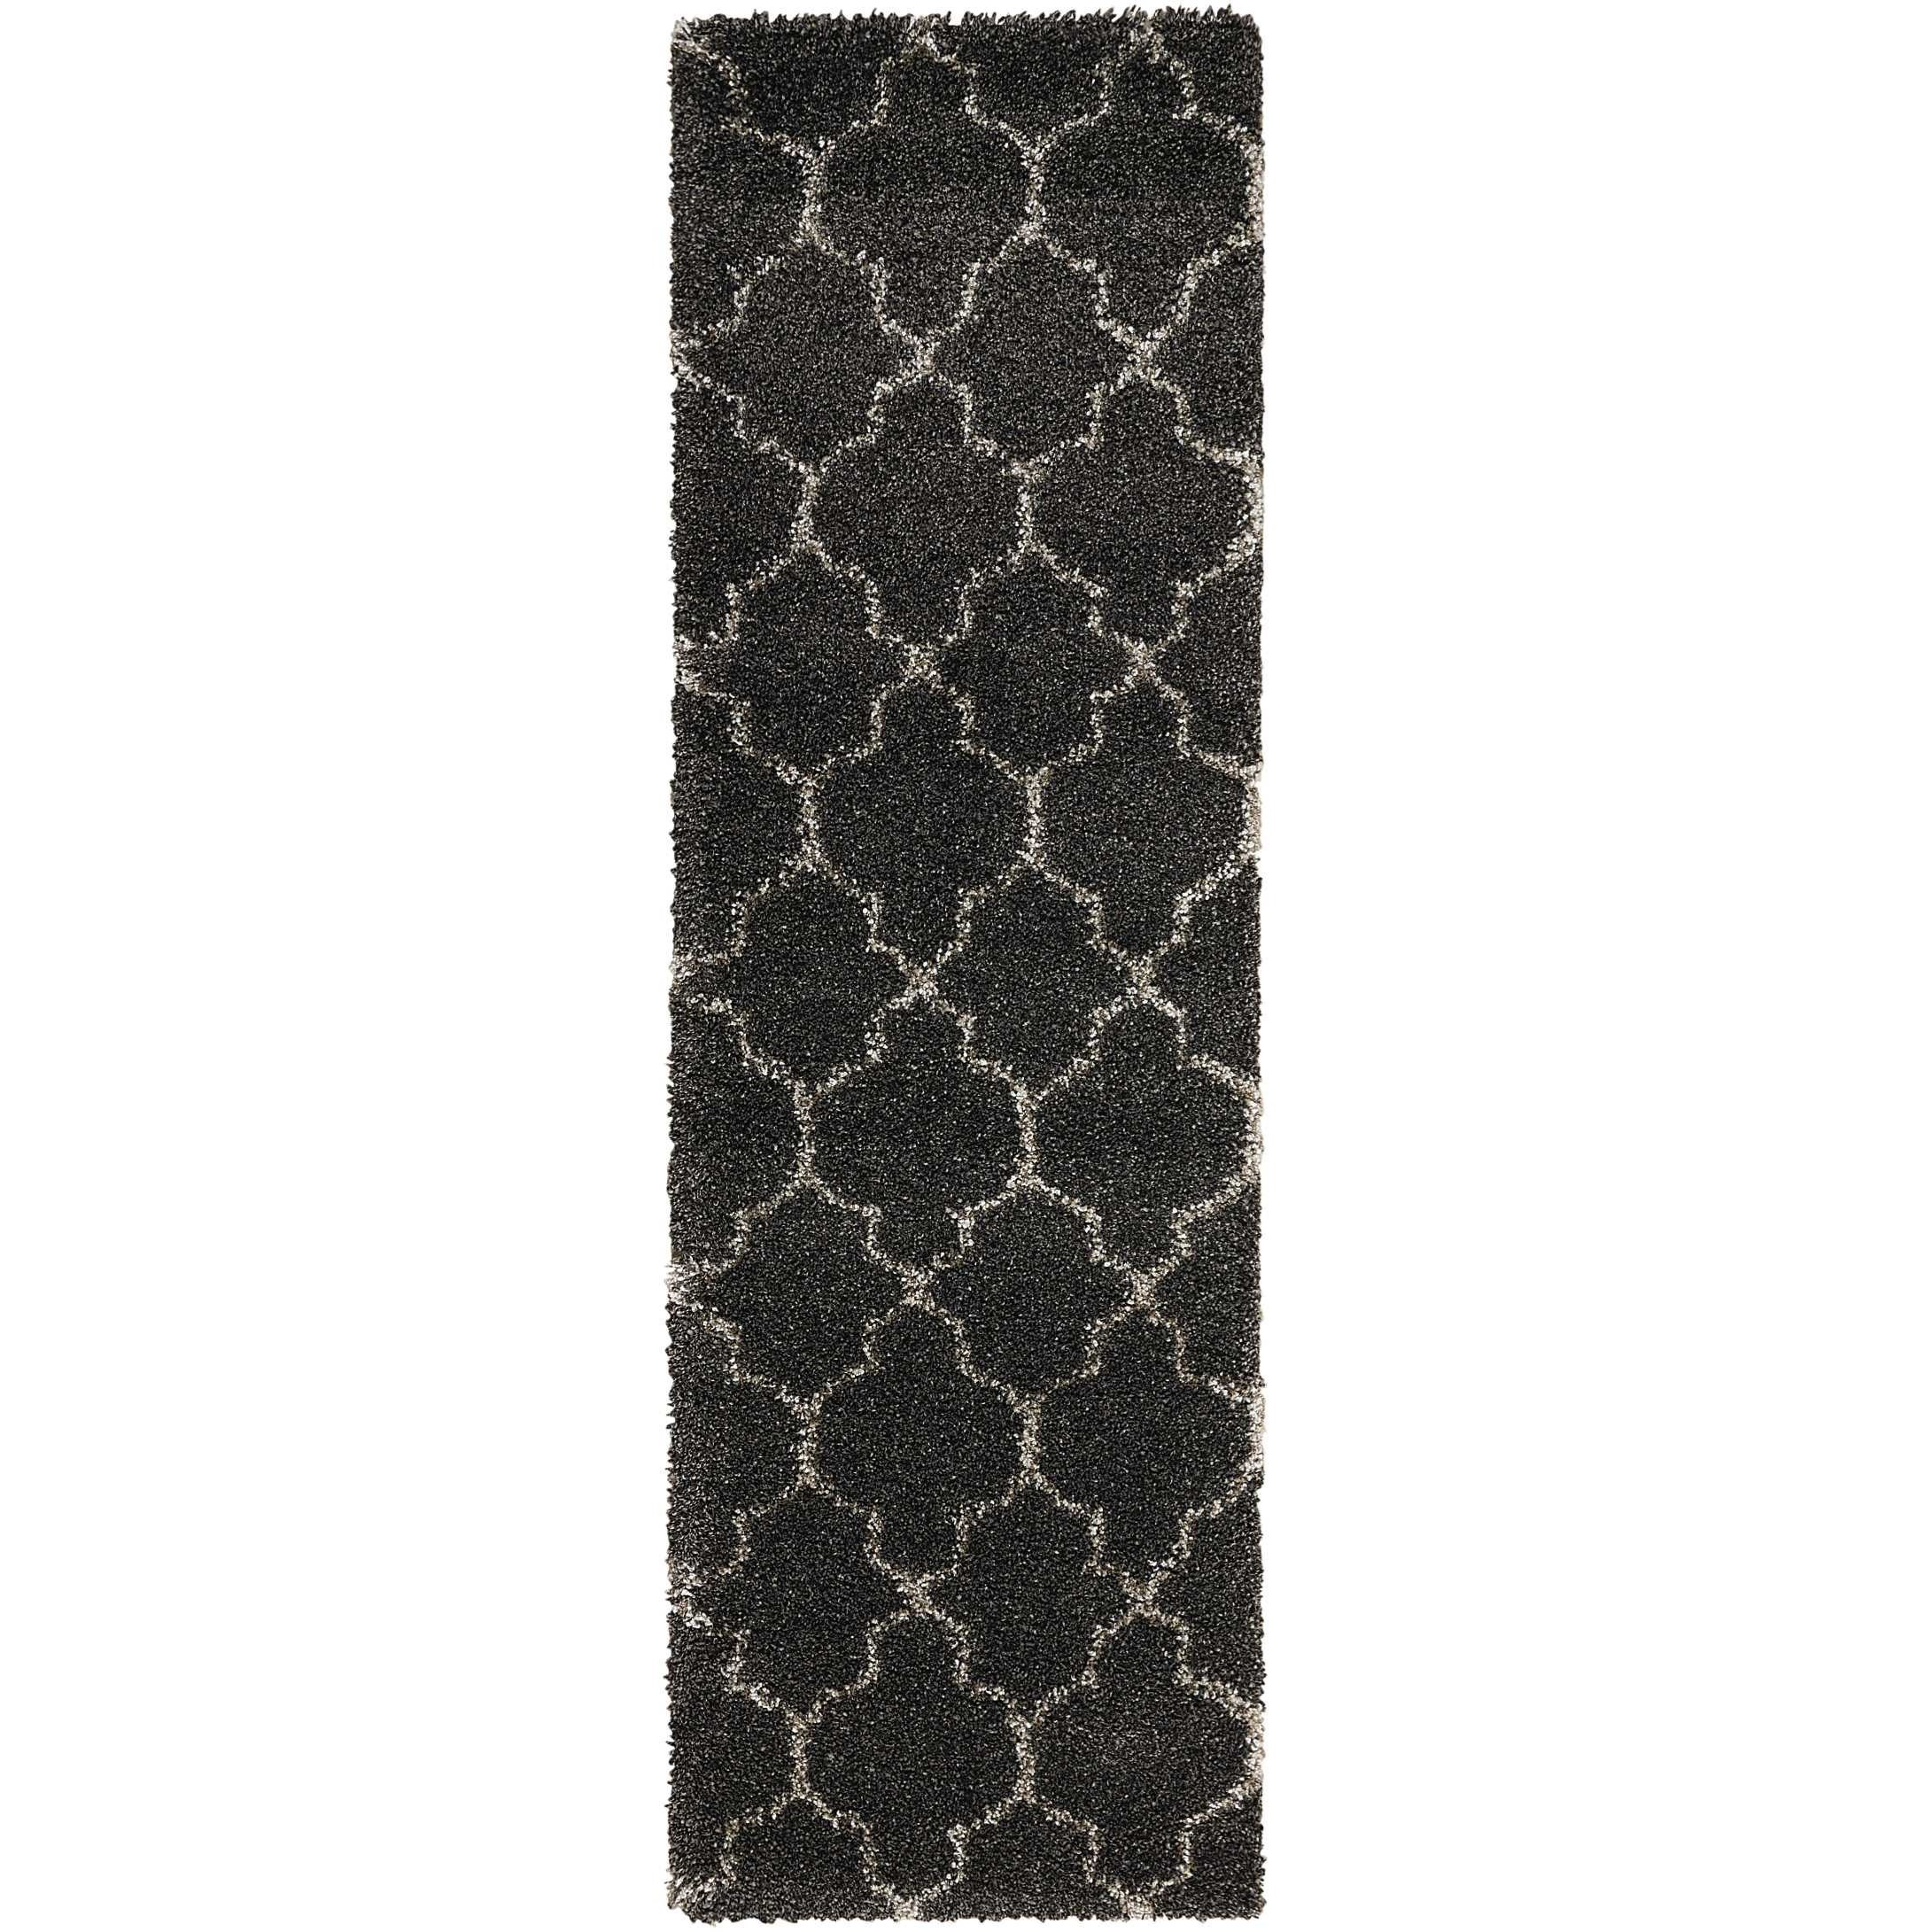 Amore Amore AMOR2 Black 8' Runner  Hallway Rug by Nourison at Home Collections Furniture